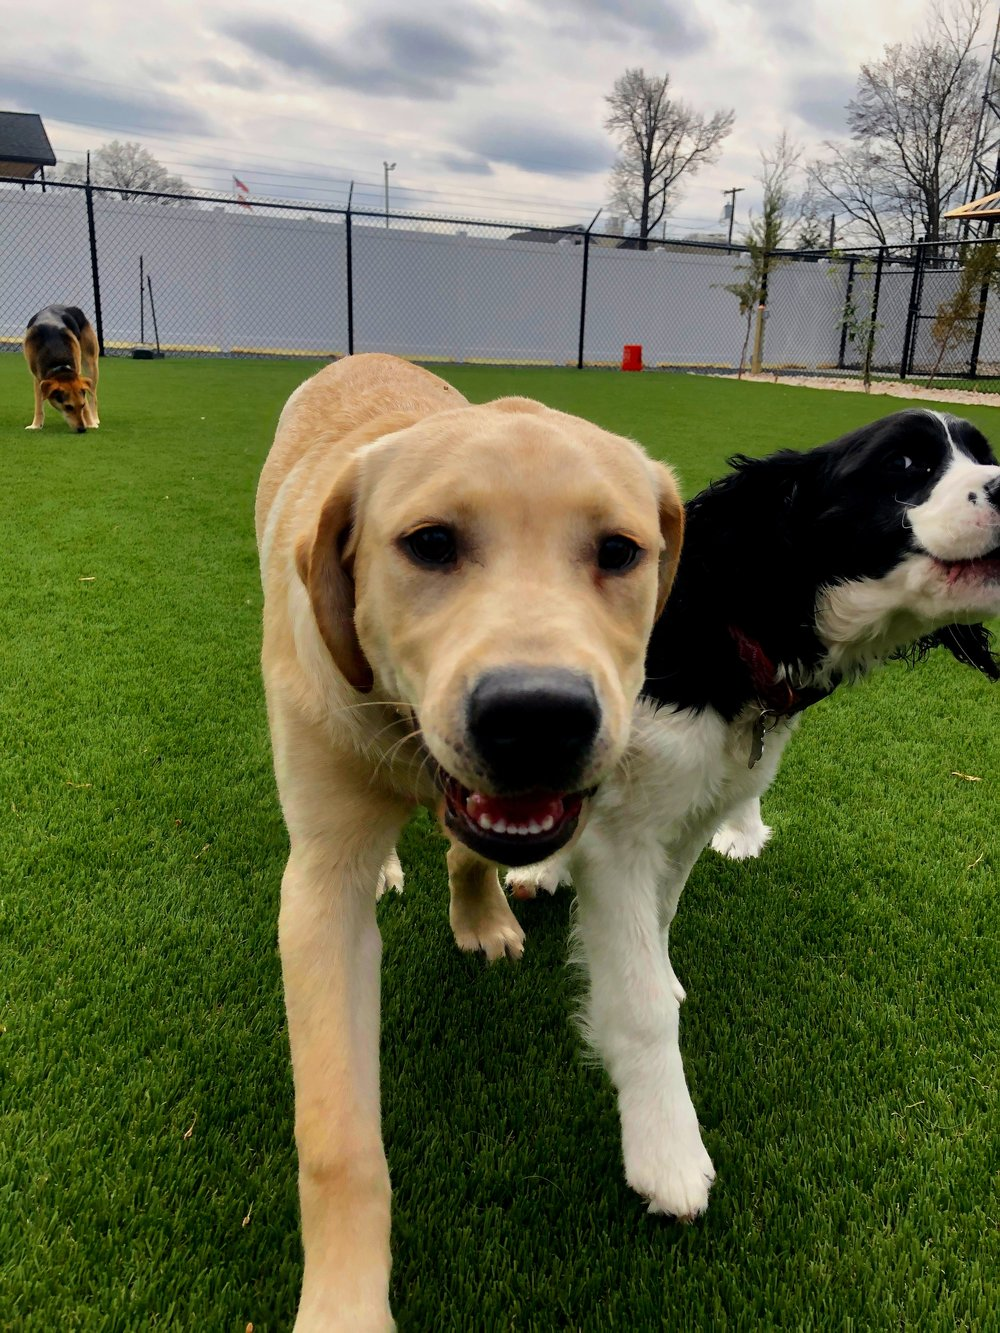 Doggie day care is a fun and simple way for your dog to gain socialization skills and get plenty of exercise in three different yards! -